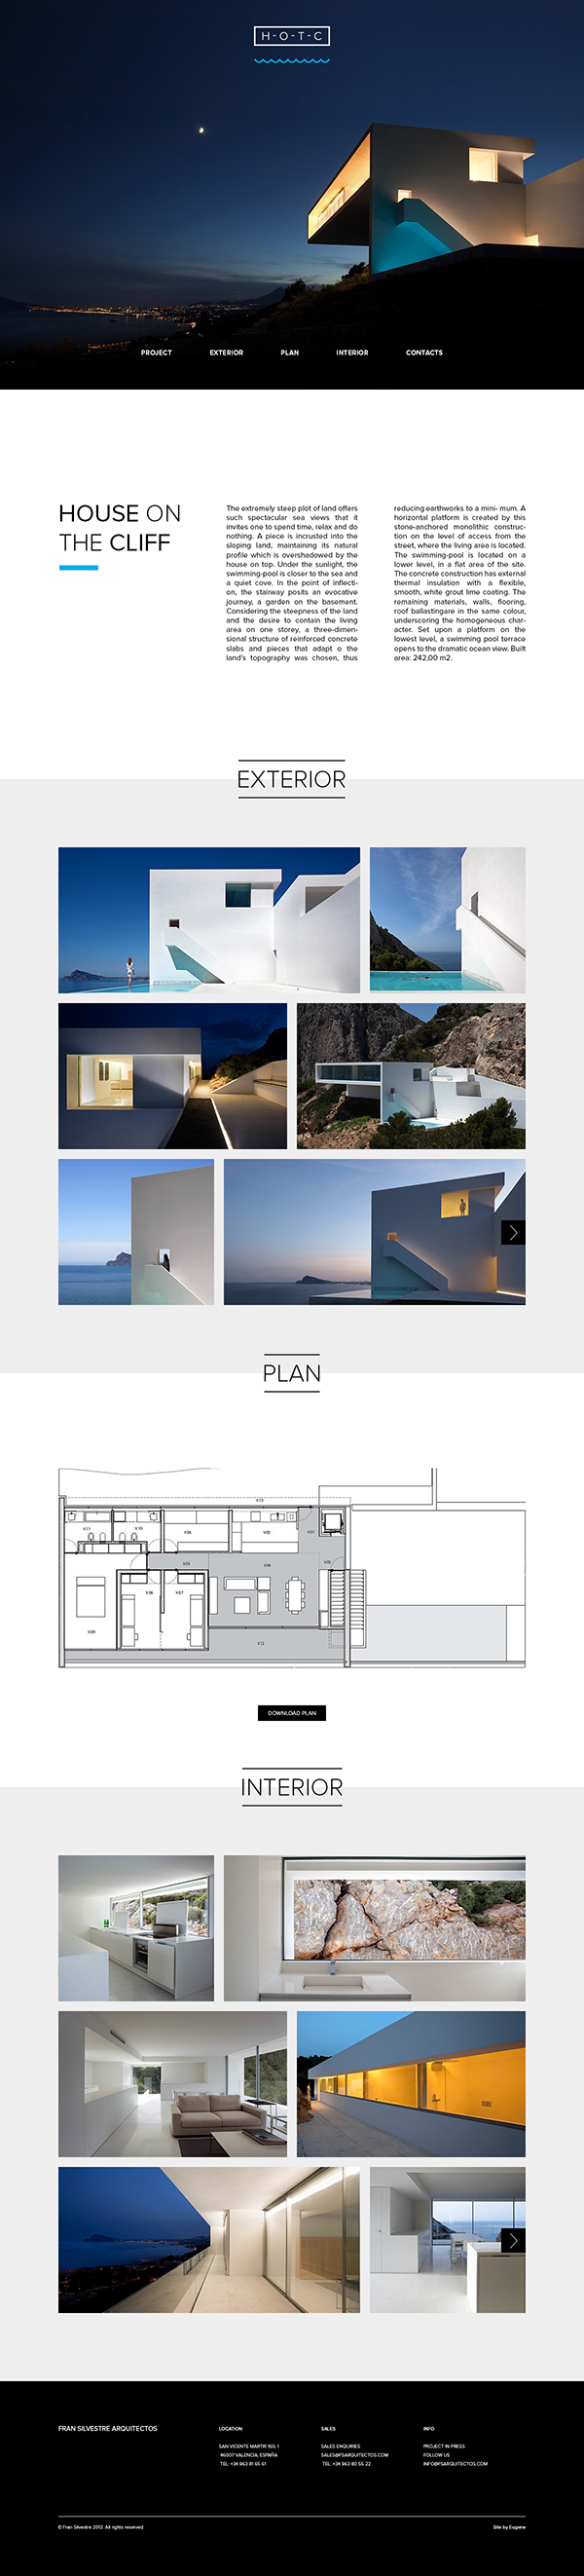 Website Design For Architecture Project On Behance